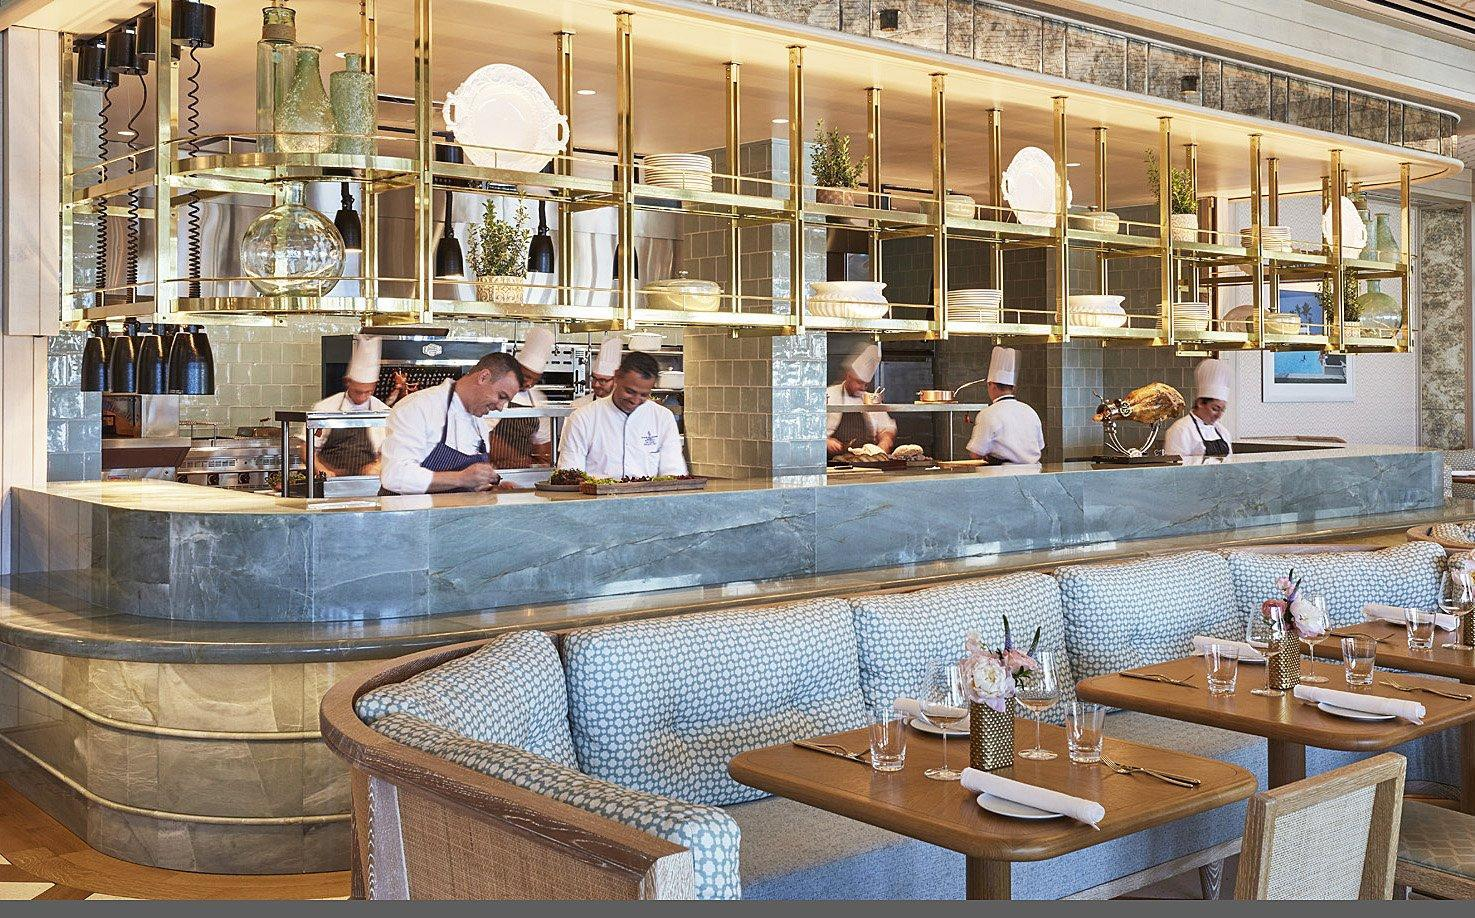 Palm Beach Dining: Florie's Next Sips To Feature Caymus Wines photo